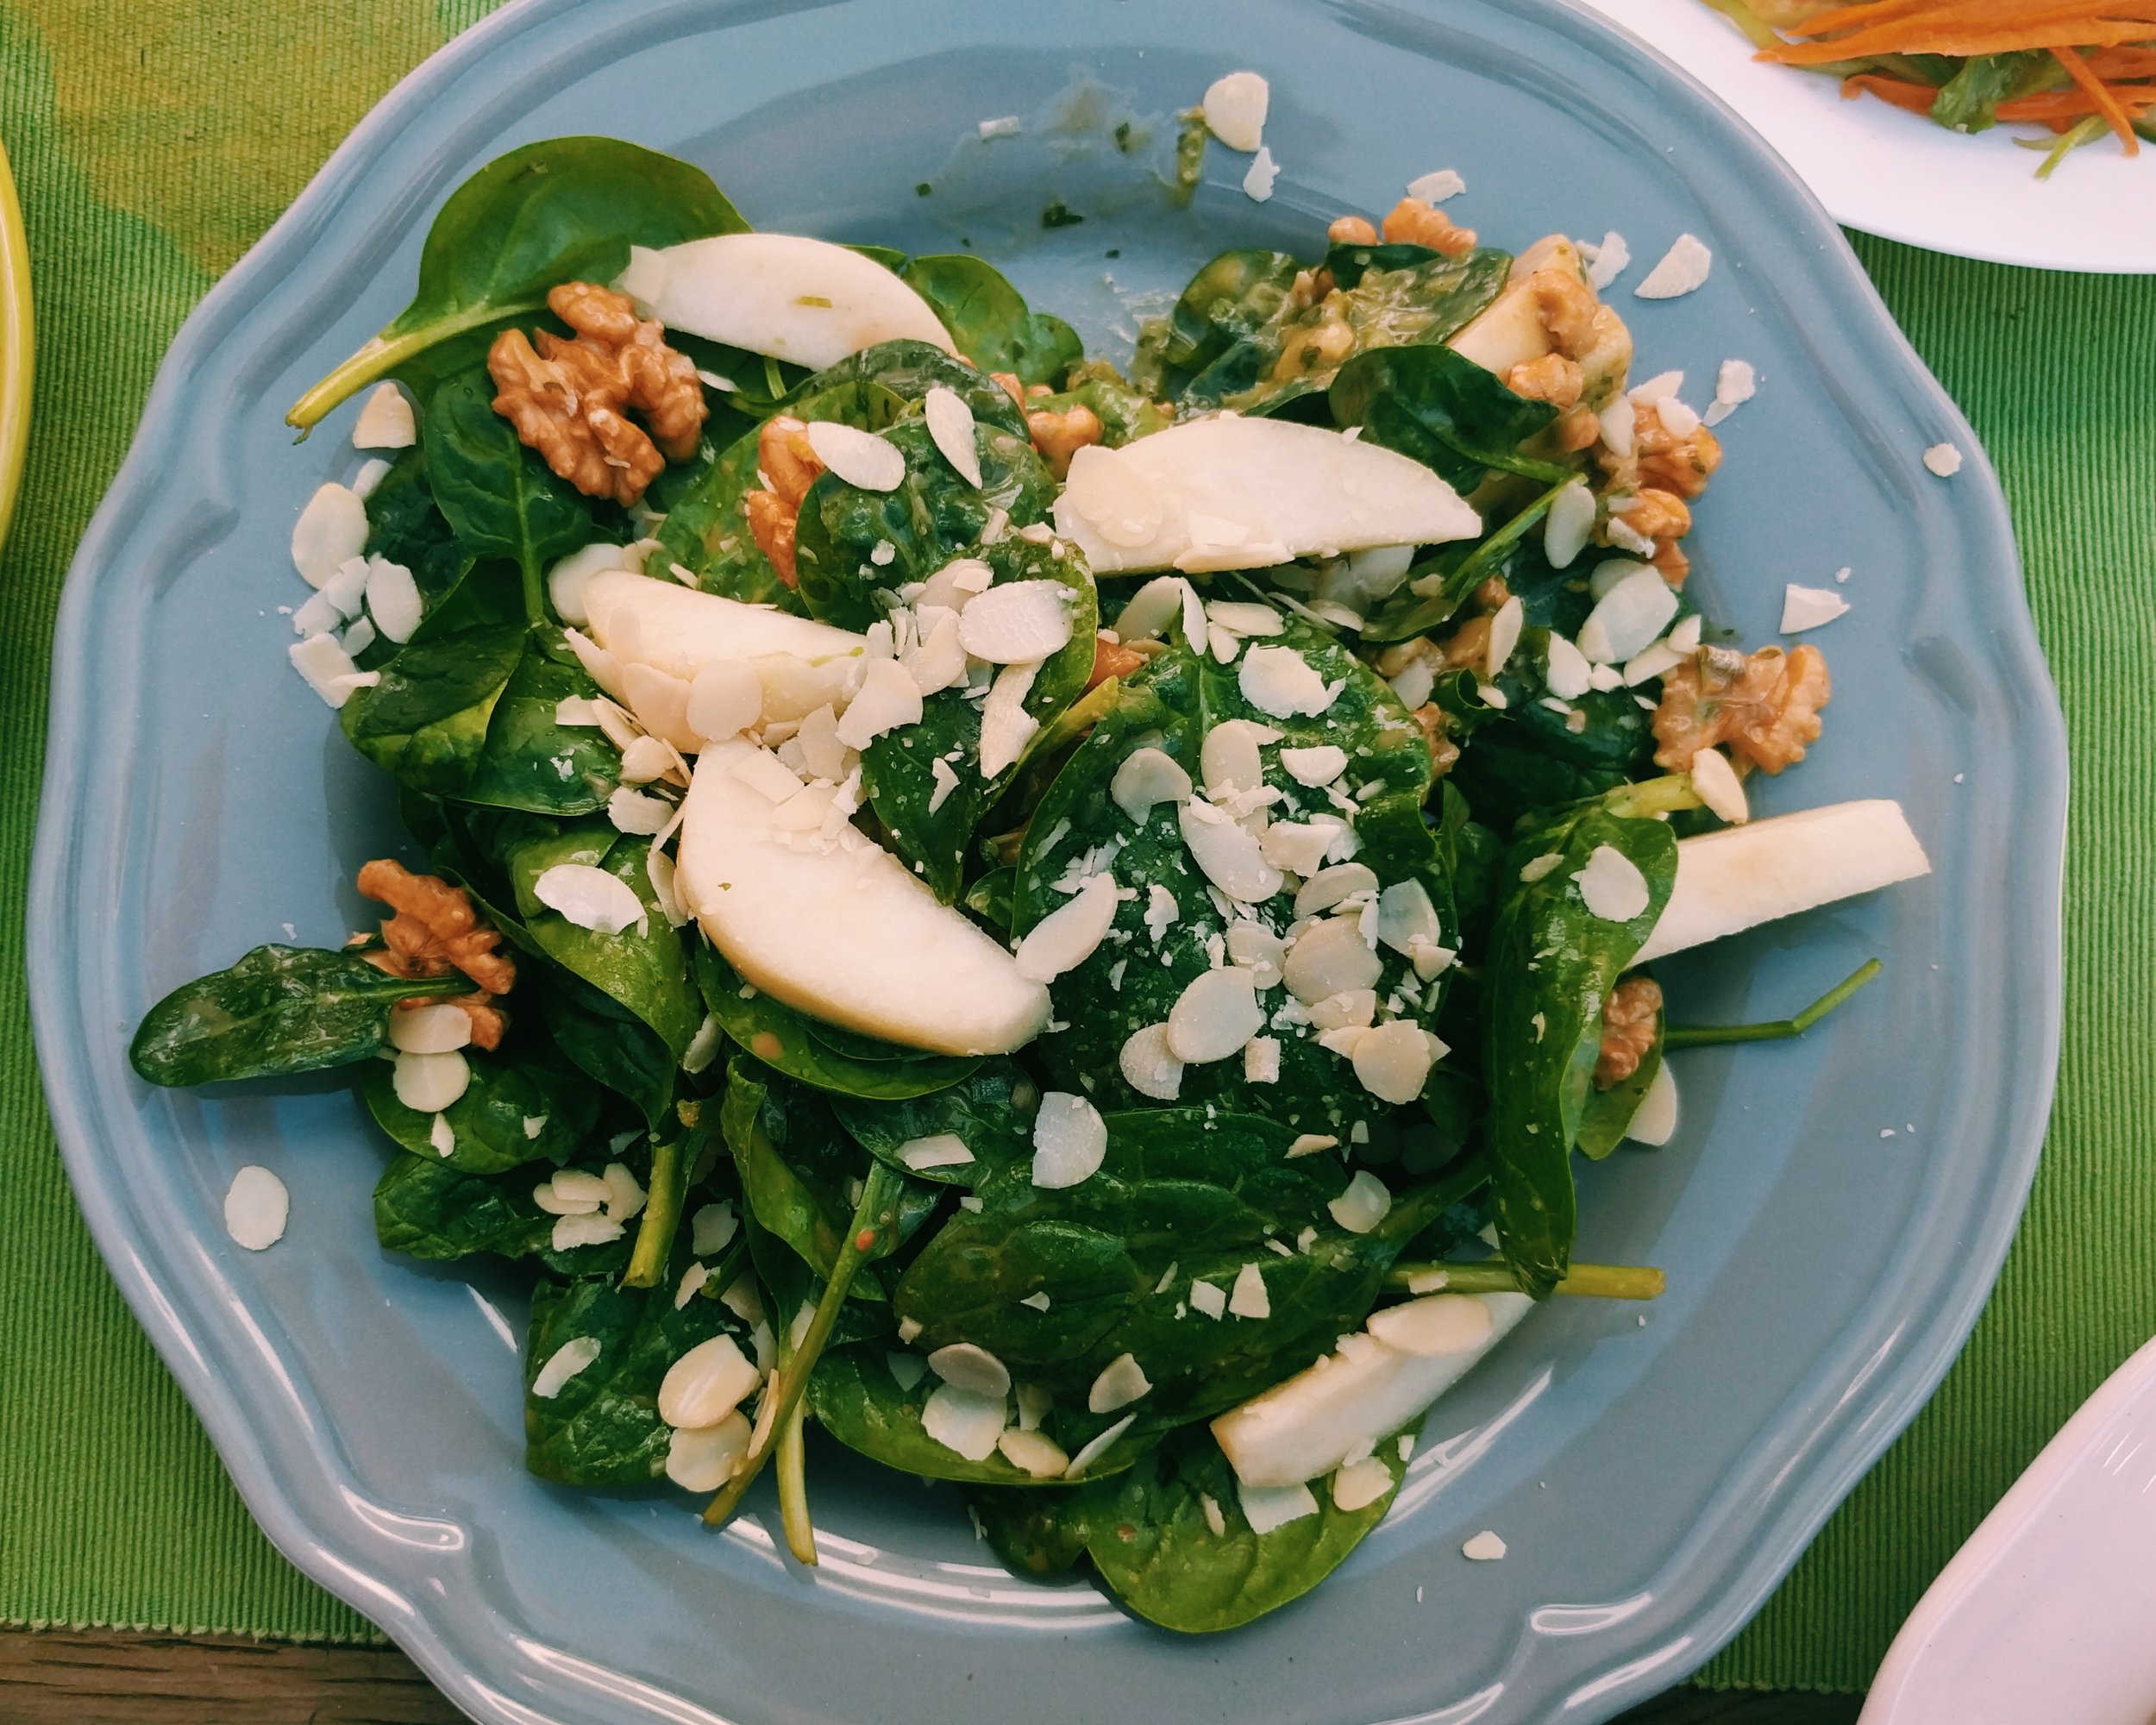 Spinach and pears salad